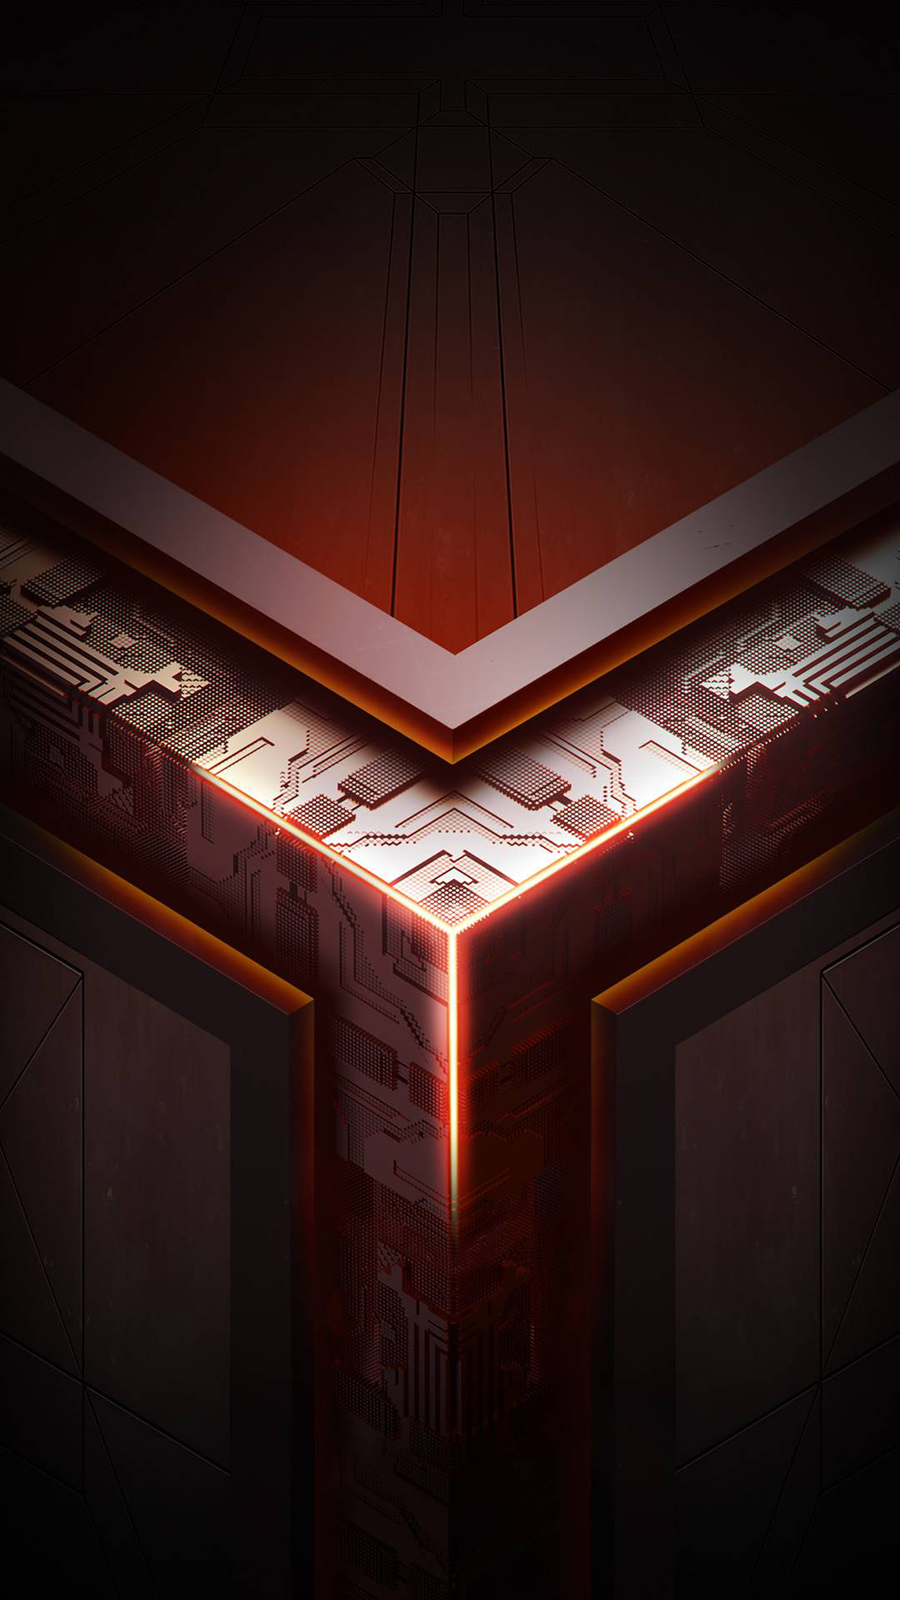 ROG Phone Wallpapers Free Download For Your Device